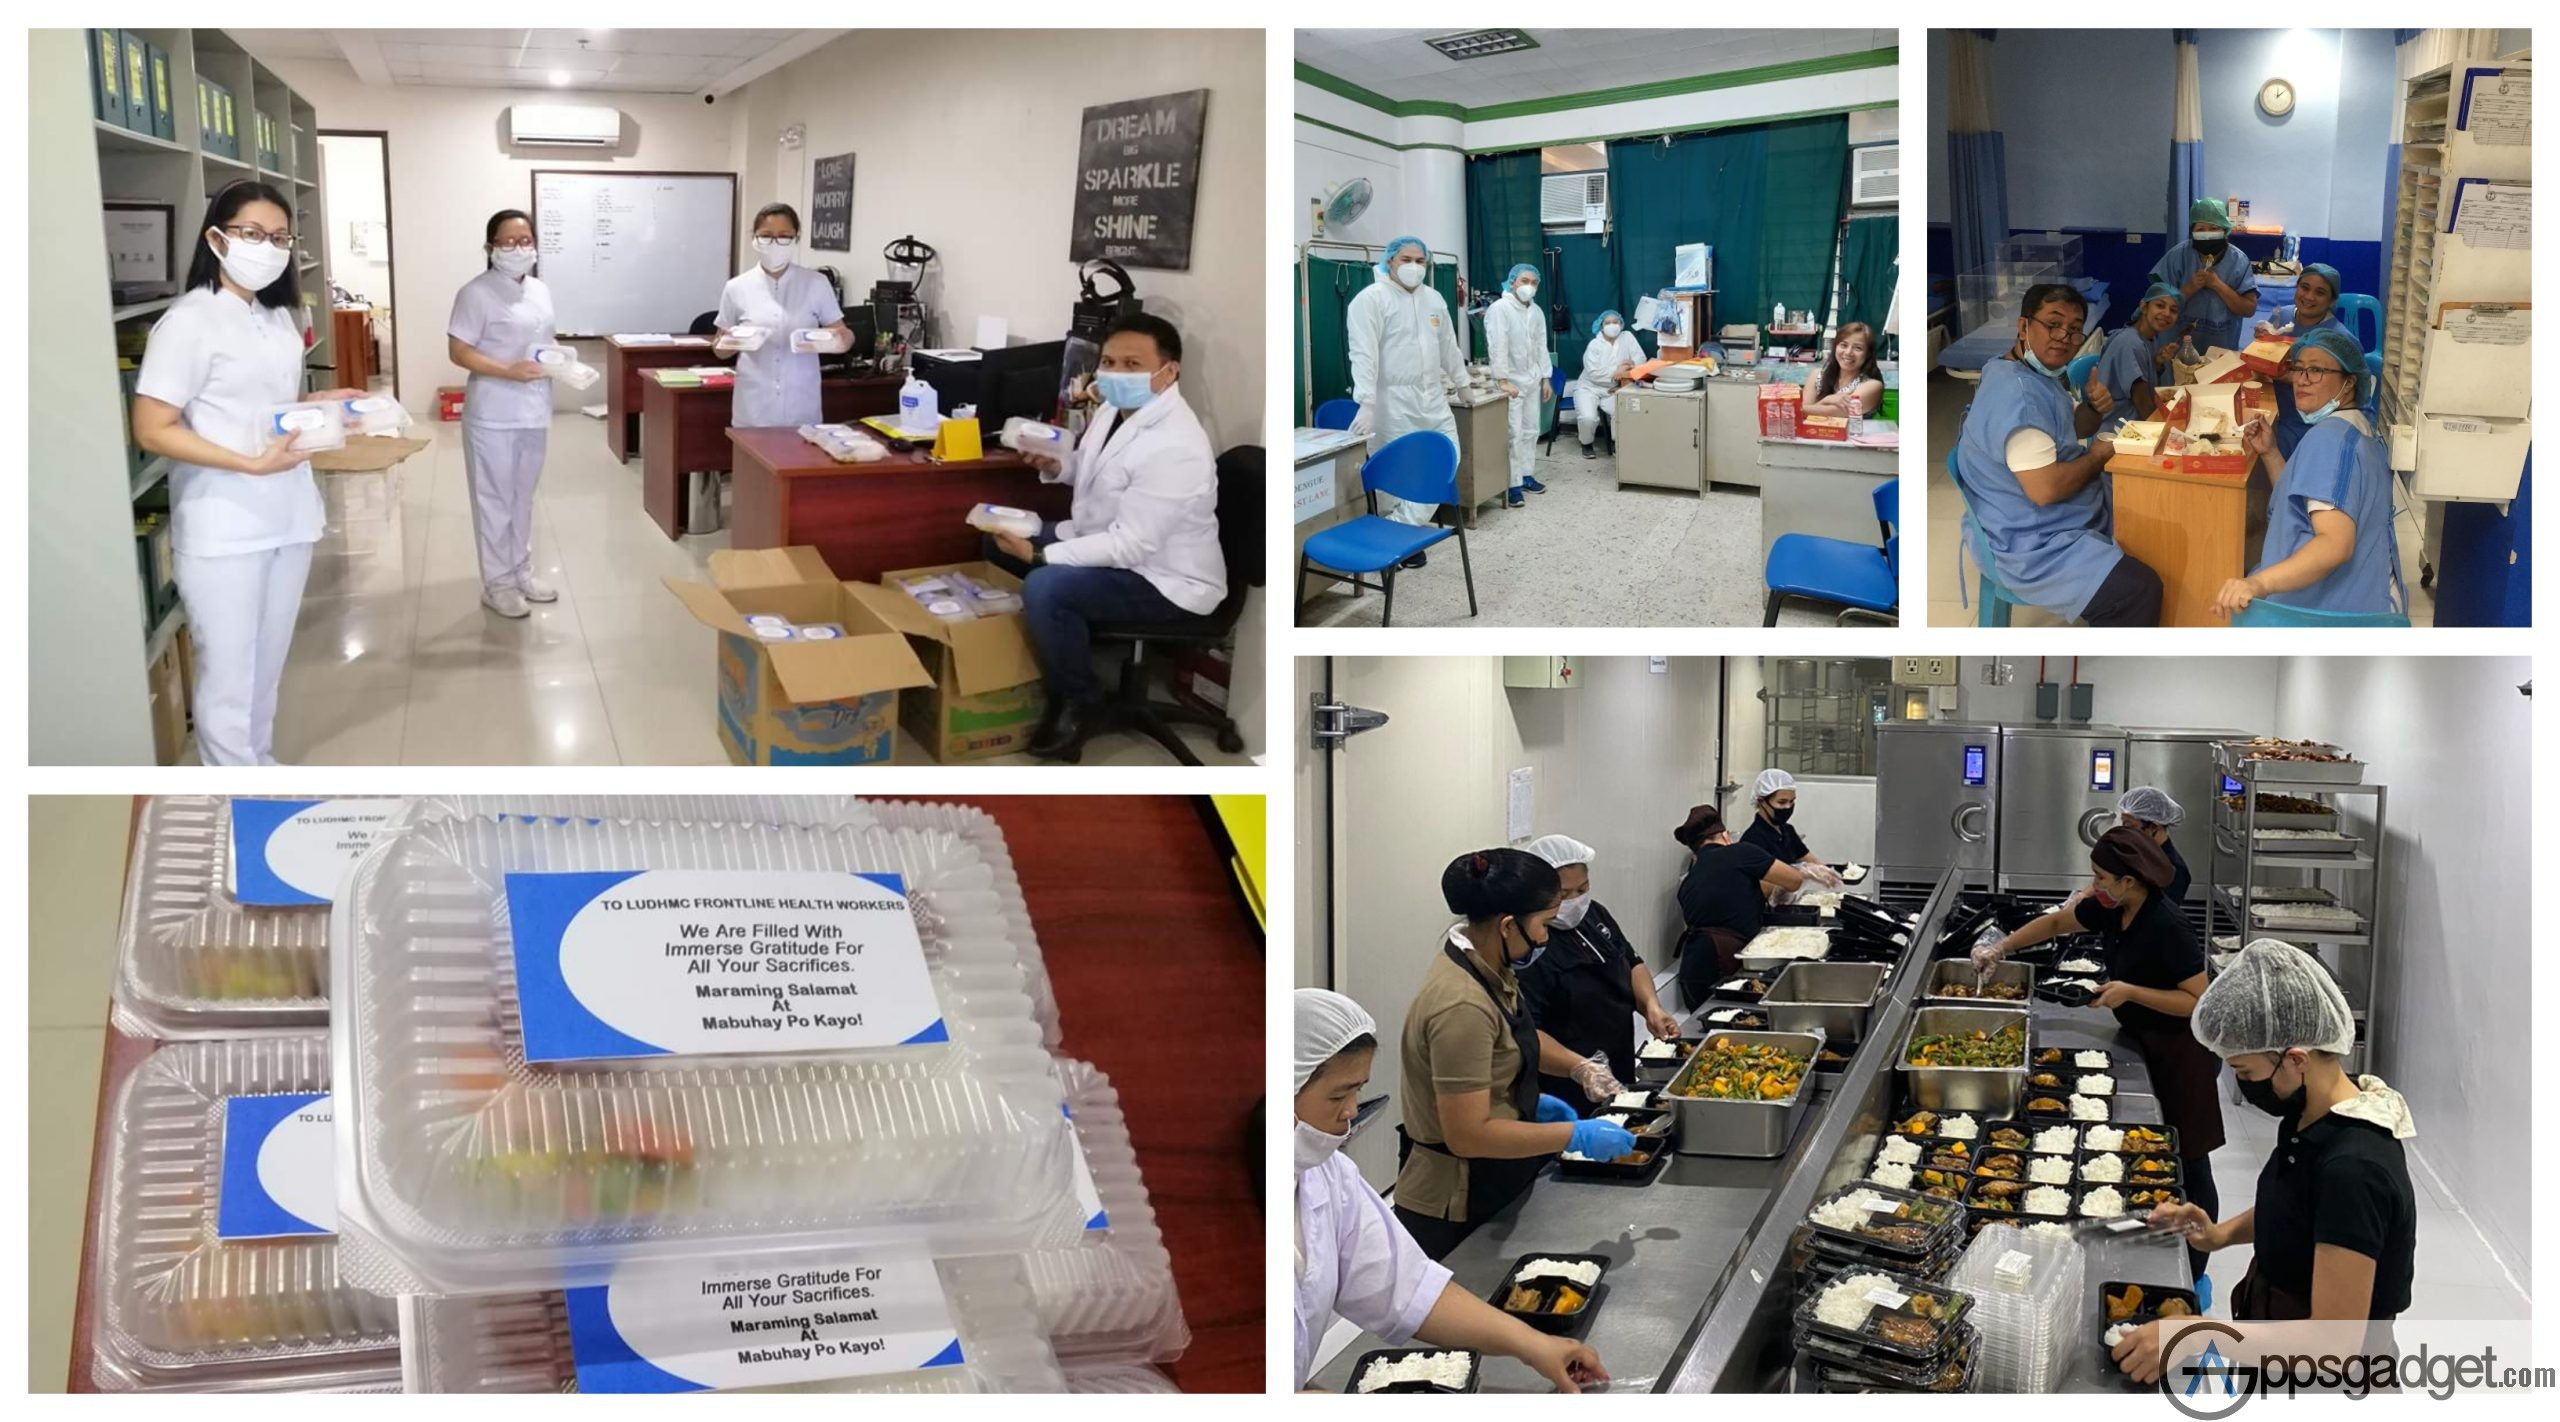 Globe myBusiness Food Distribution to Hospitals